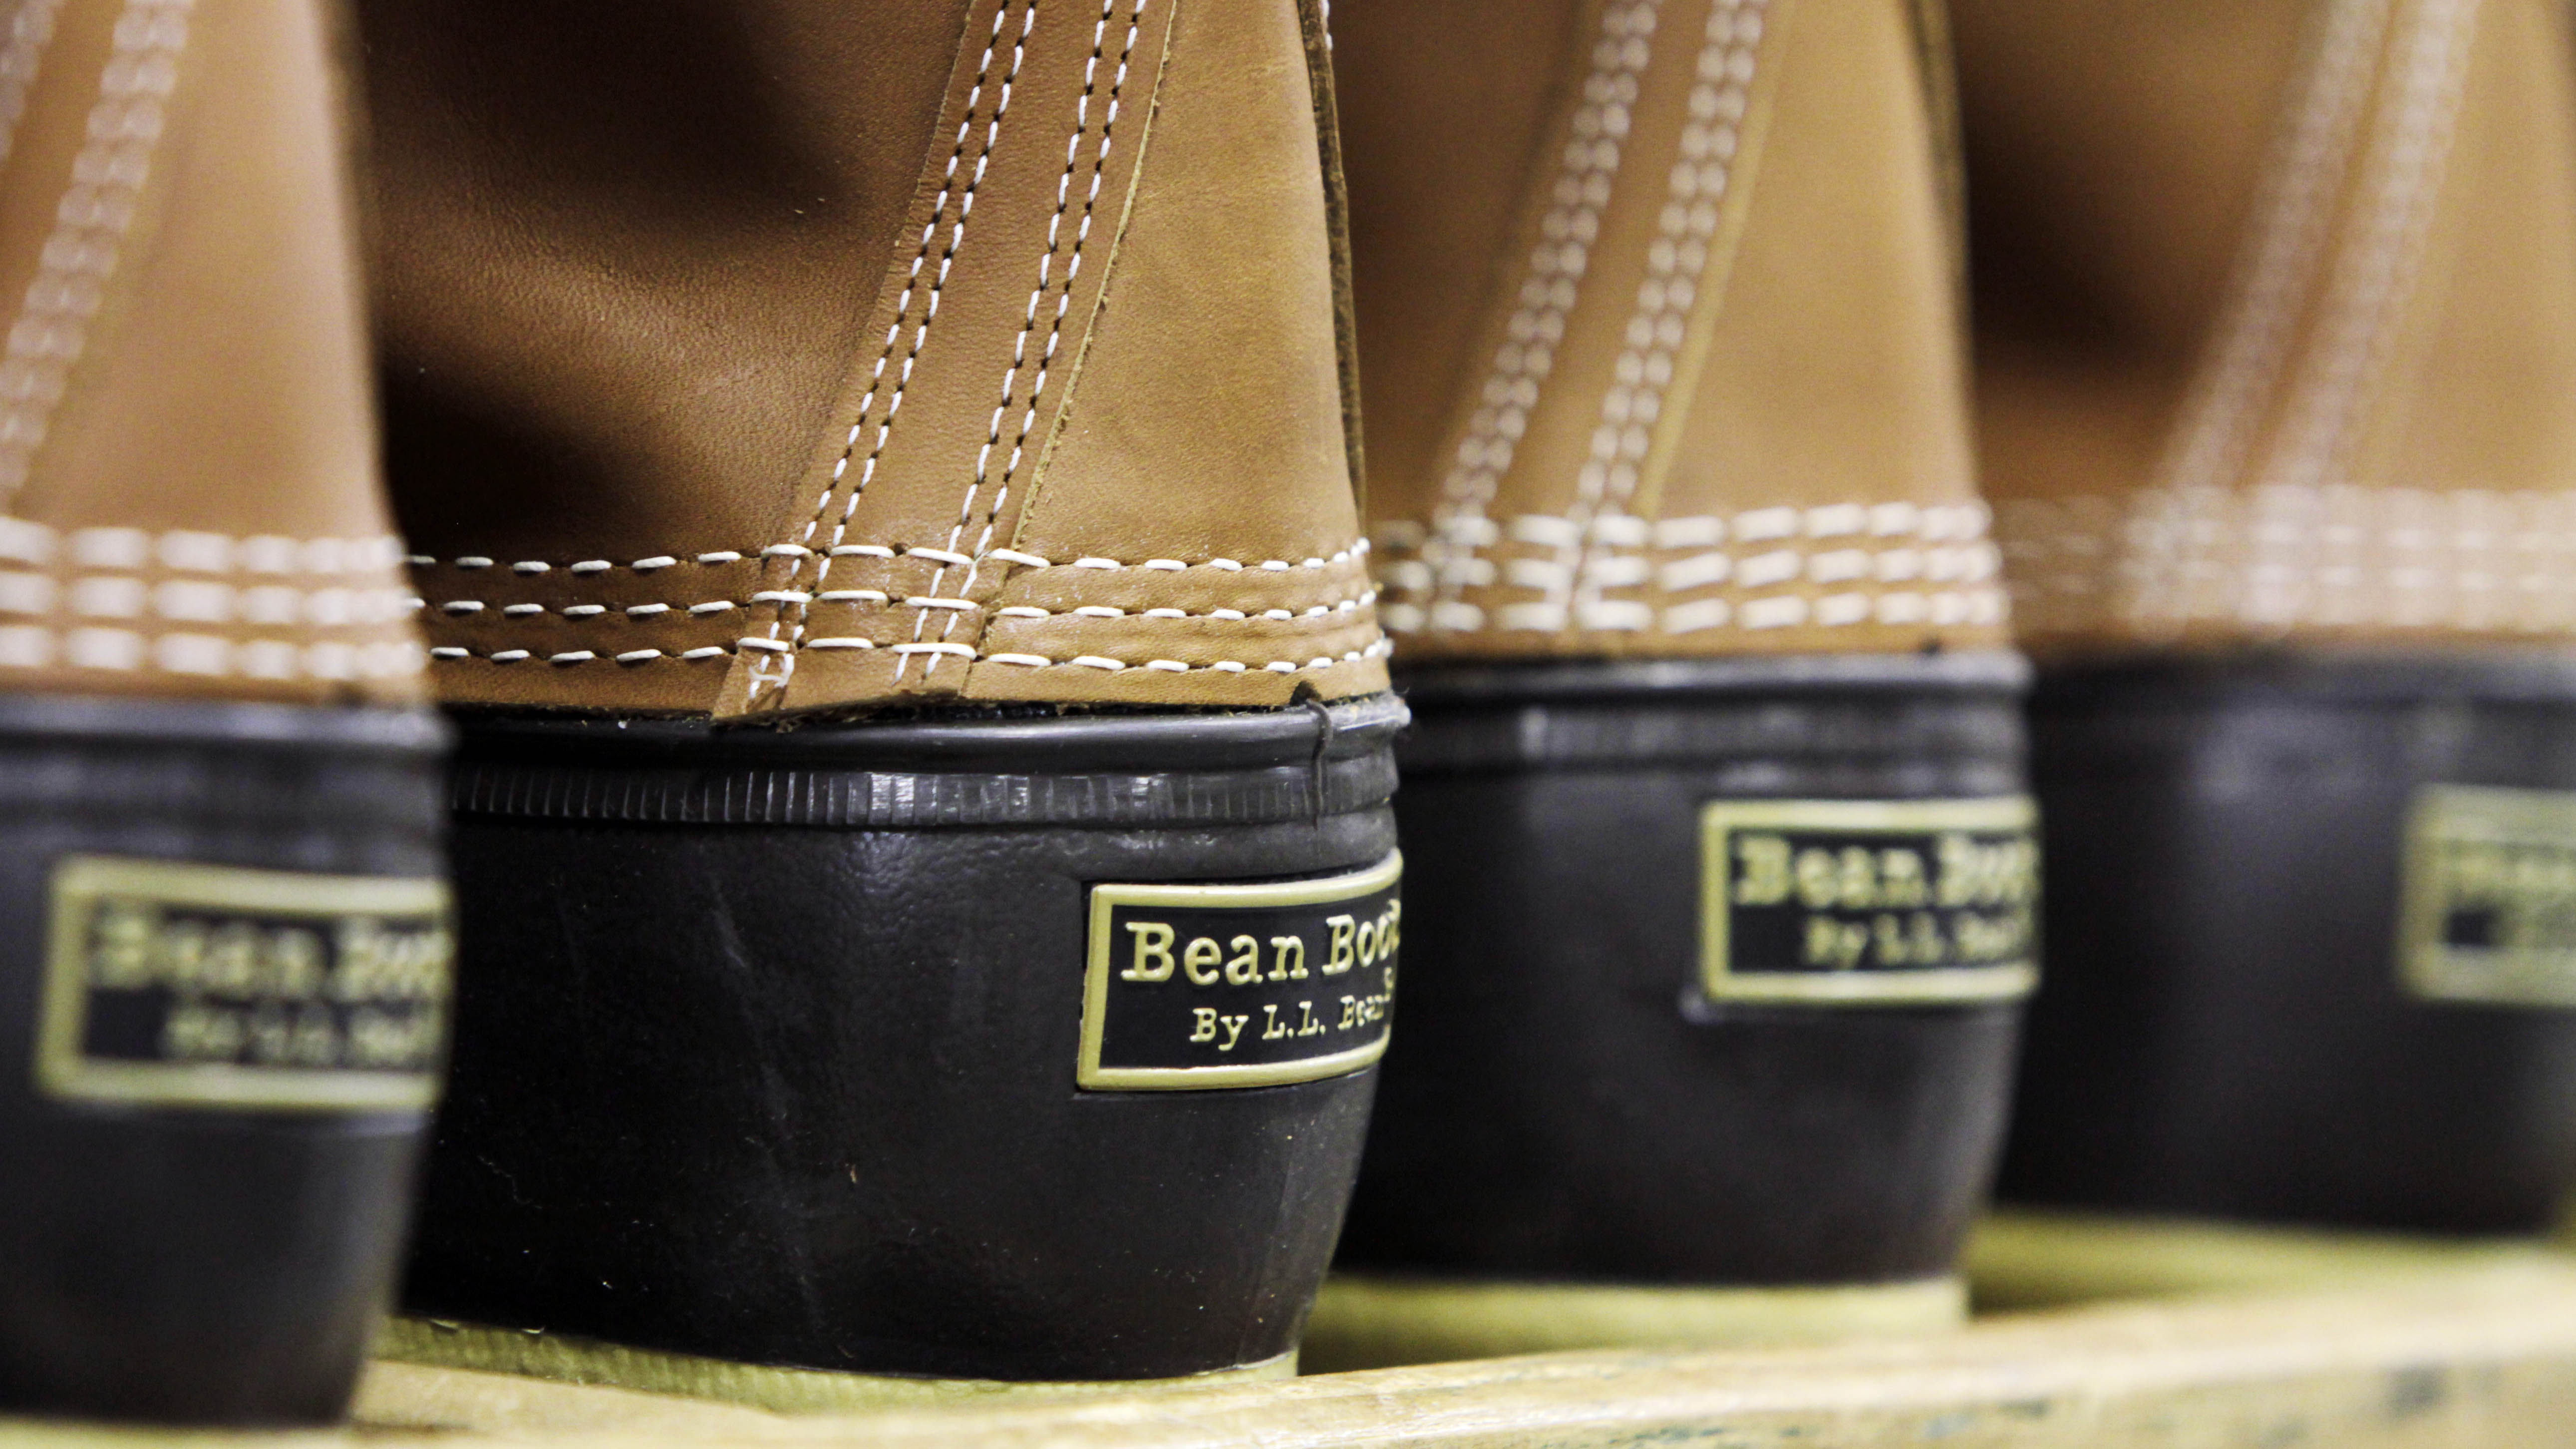 In this Dec. 14, 2011 photo, pairs of boots are seen in the facility where L.L. Bean boots are assembled in Brunswick, Maine. L.L. Bean's famed hunting boots are seeing a surge in popularity, necessitating the hiring of more than 100 additional employees to make them.